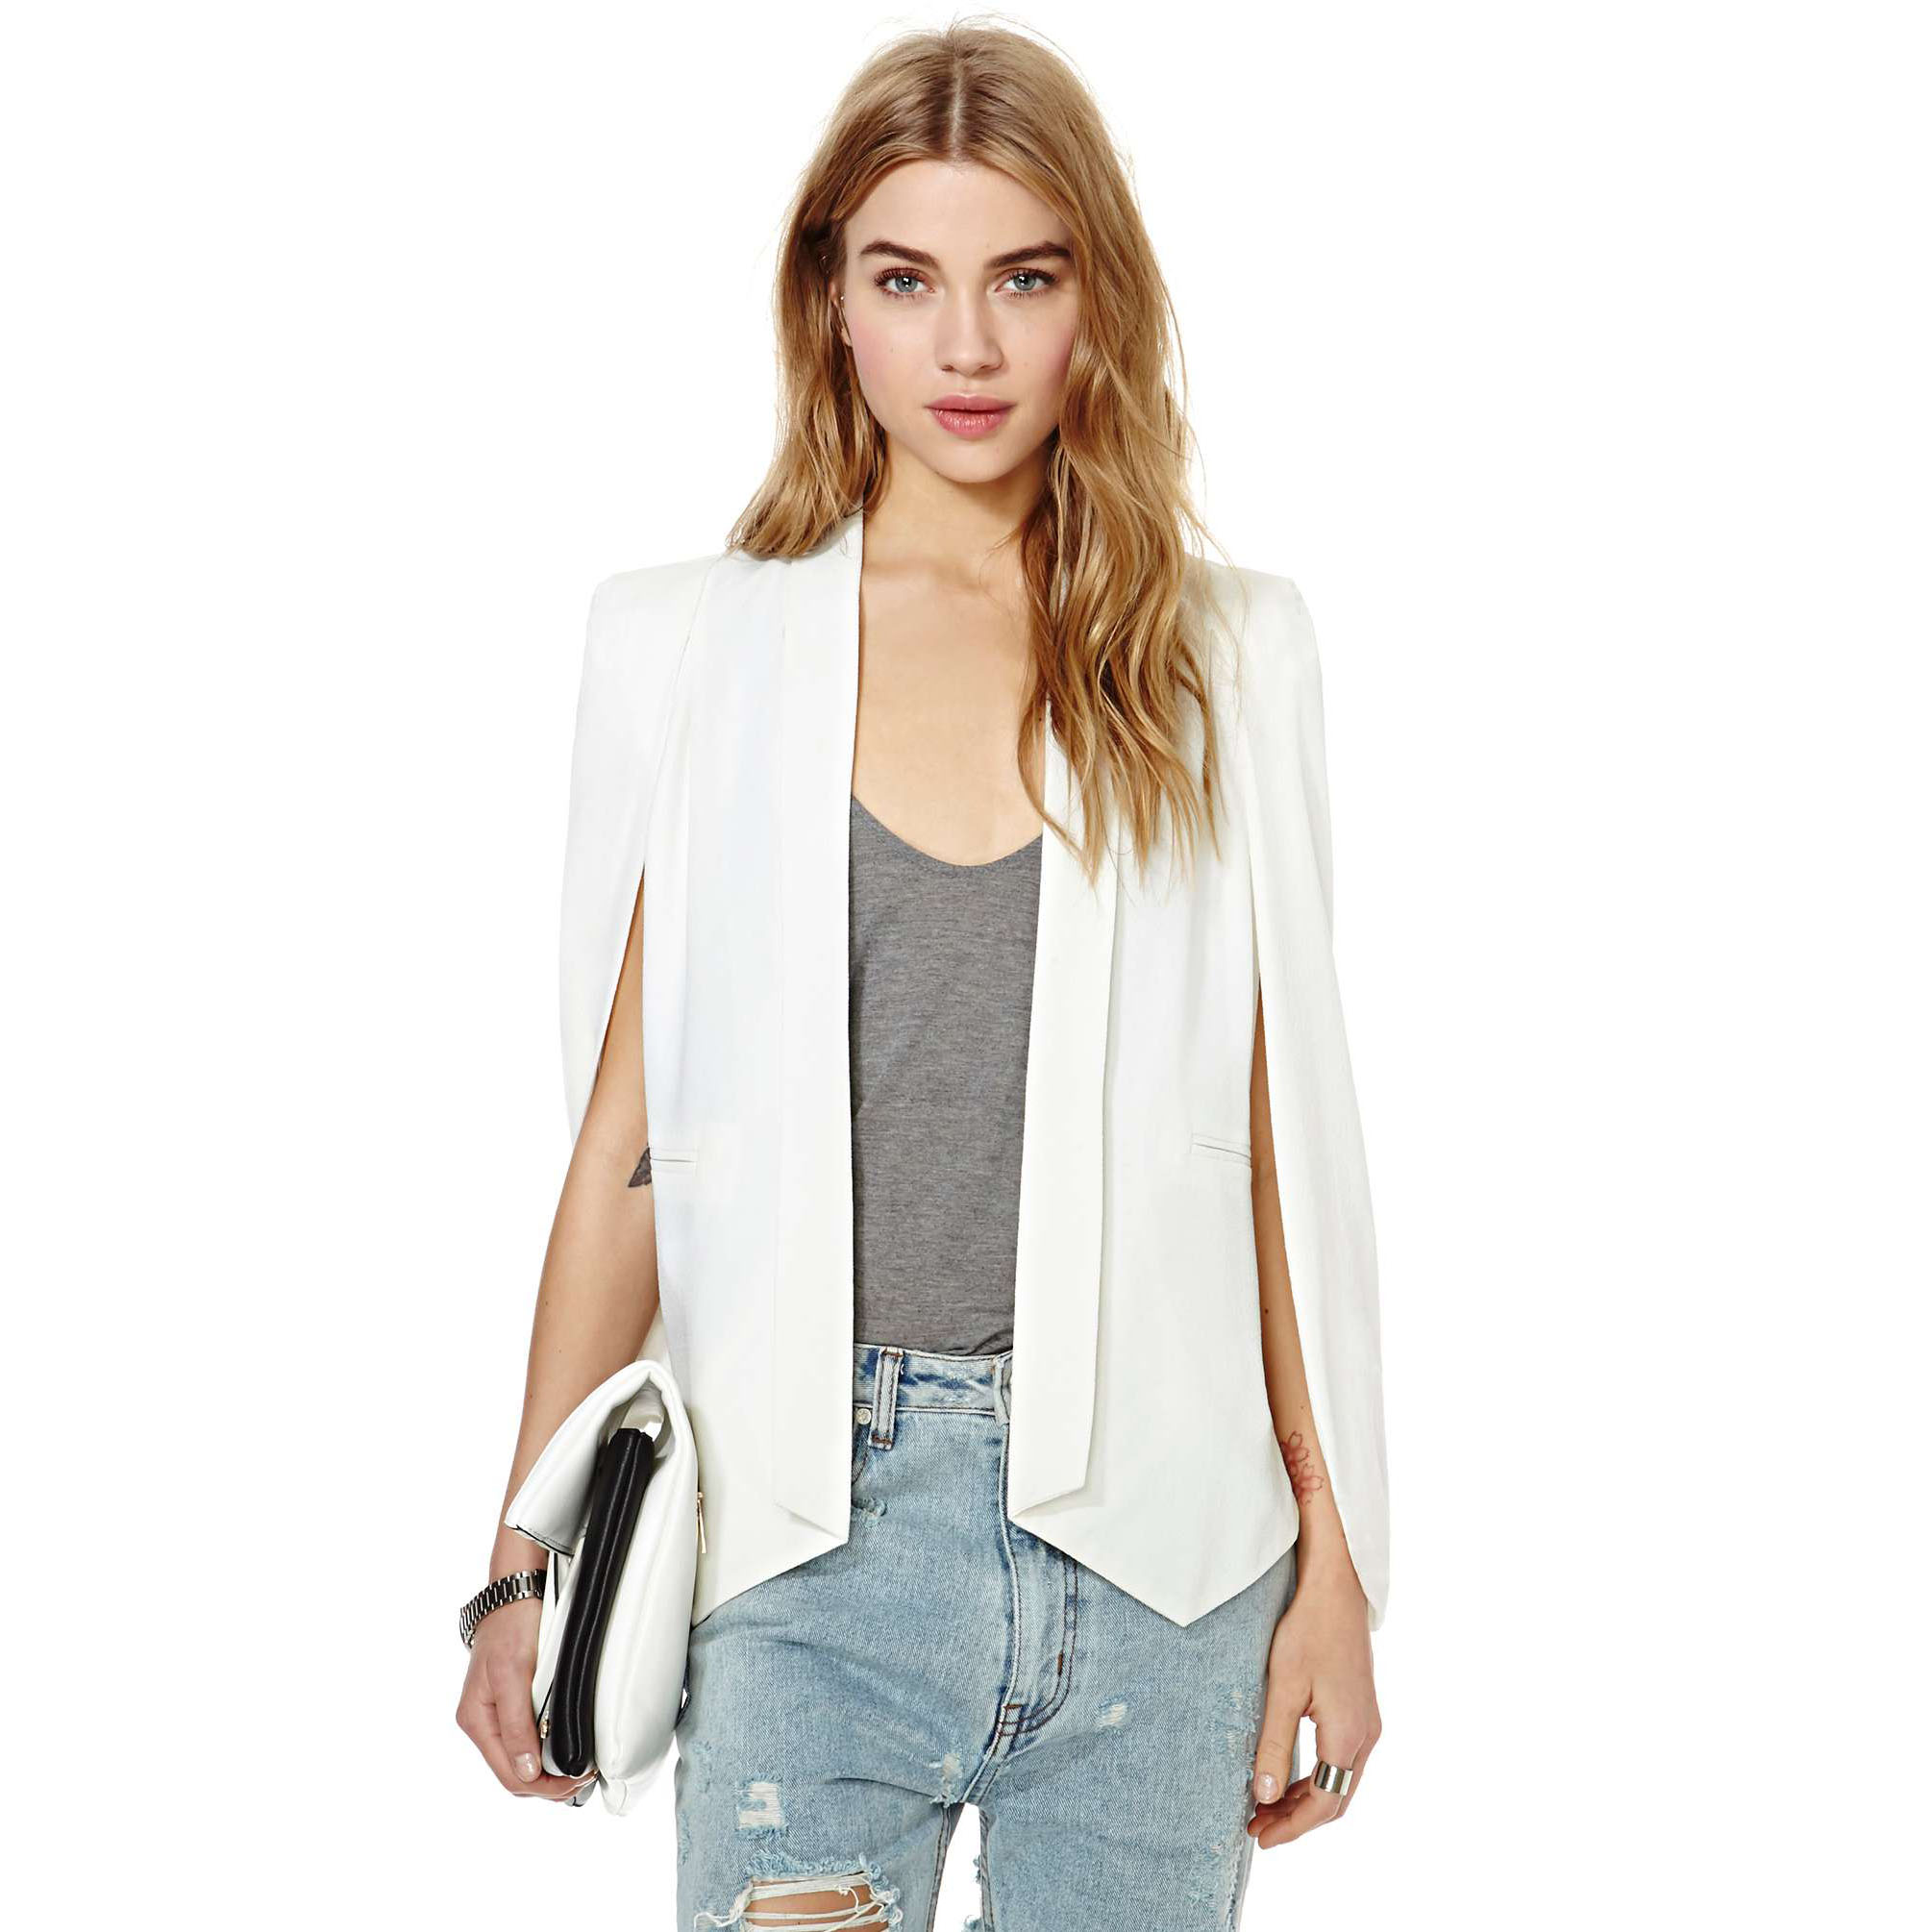 Shop the latest fashion clothes for women at BCBG. From blouses and tees, to skirts, pants and jumpsuits, you're sure to find the best selection of women's clothing! BCBG.